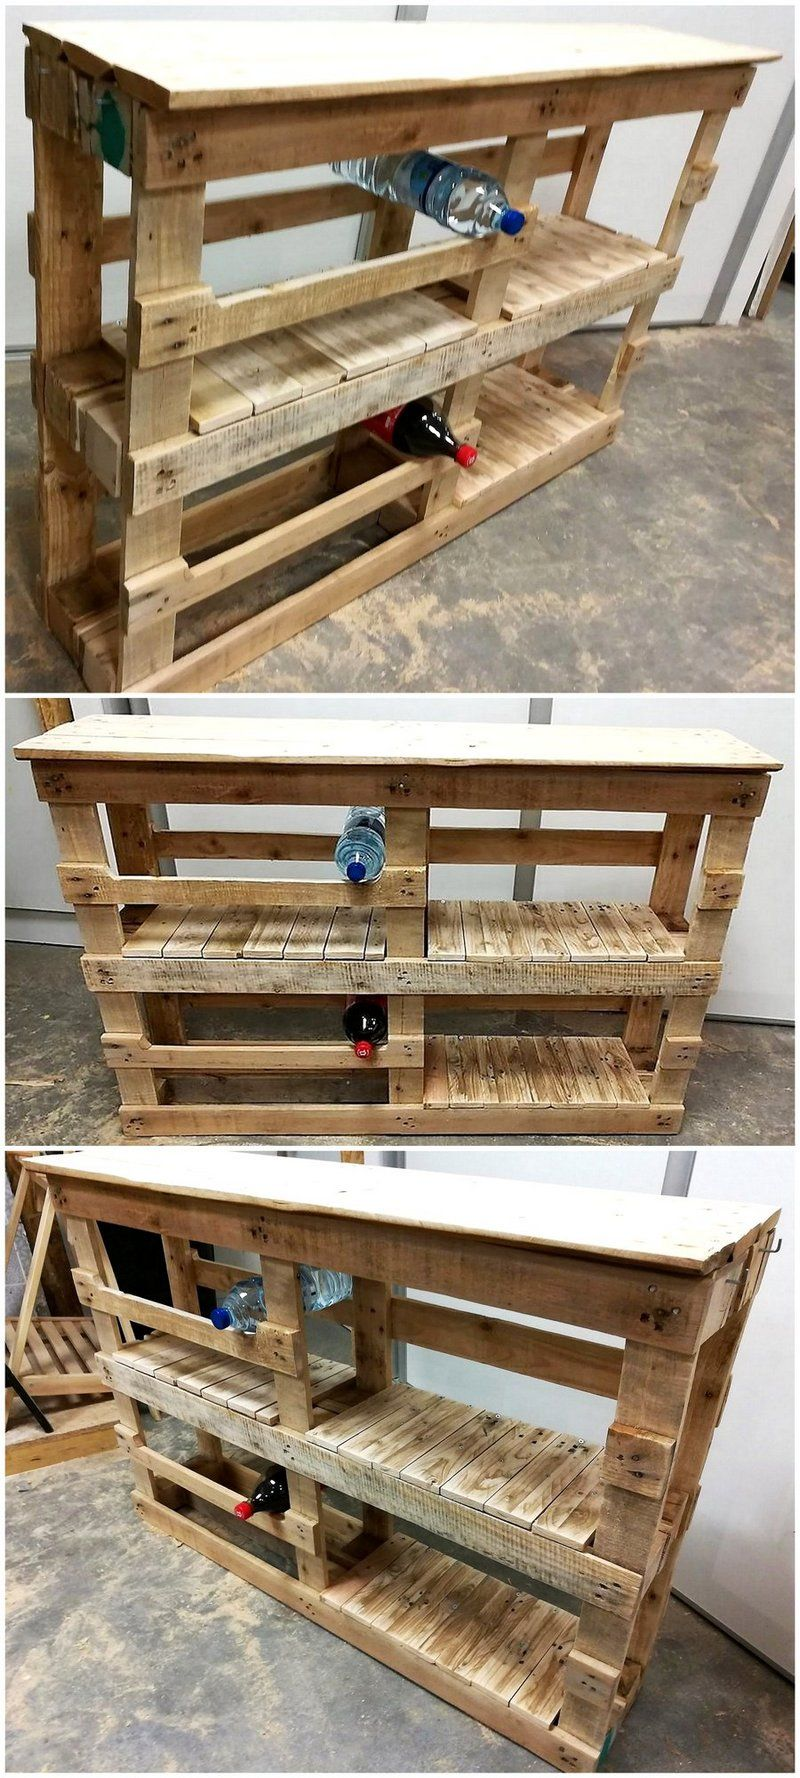 usable ideas for used wood pallet reusing pallet wooden on extraordinary ideas for old used dumped pallets wood id=79938